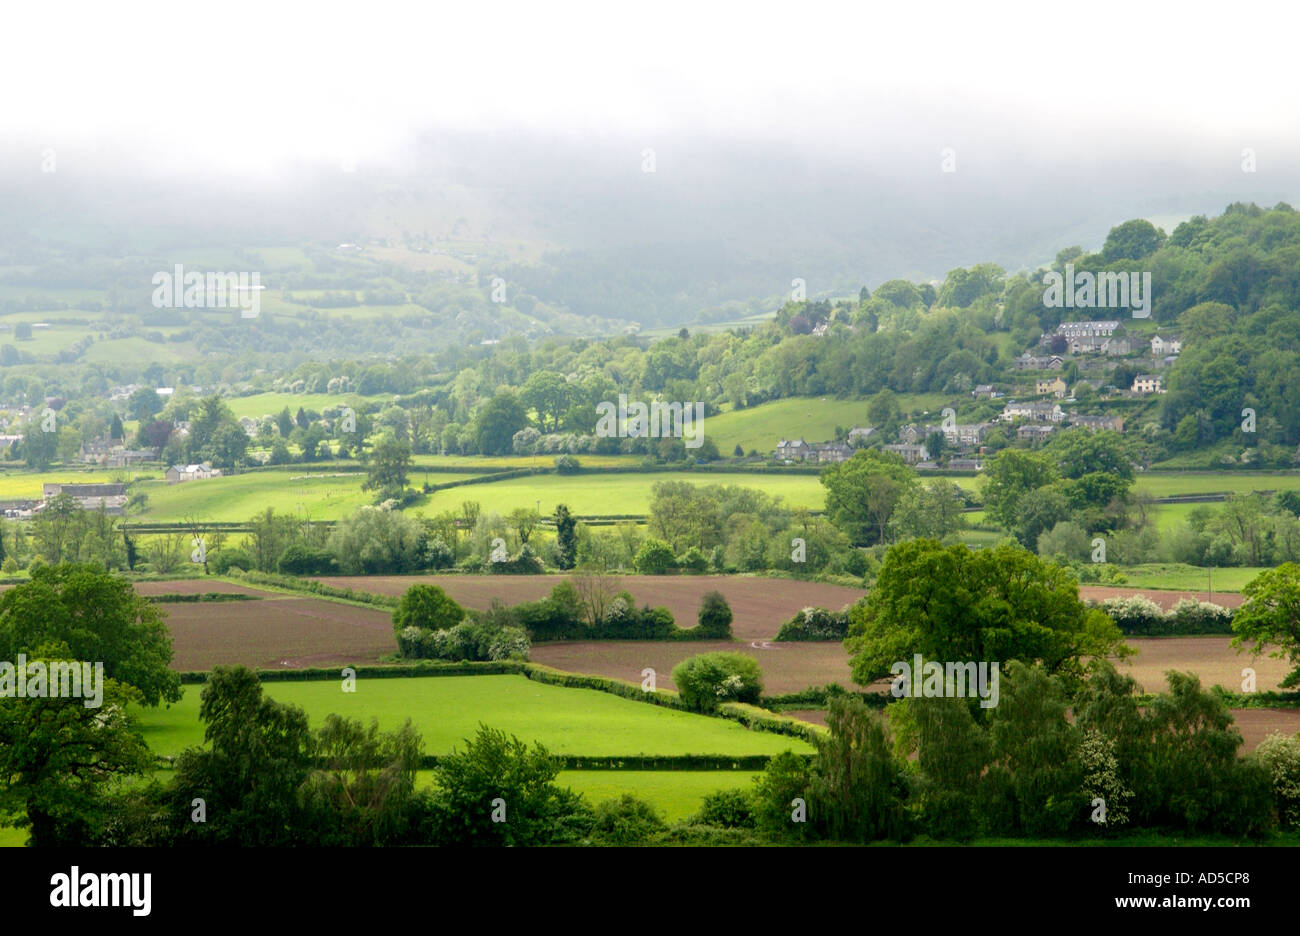 View over farmland with mist on the hills near Crickhowell Powys Wales UK - Stock Image